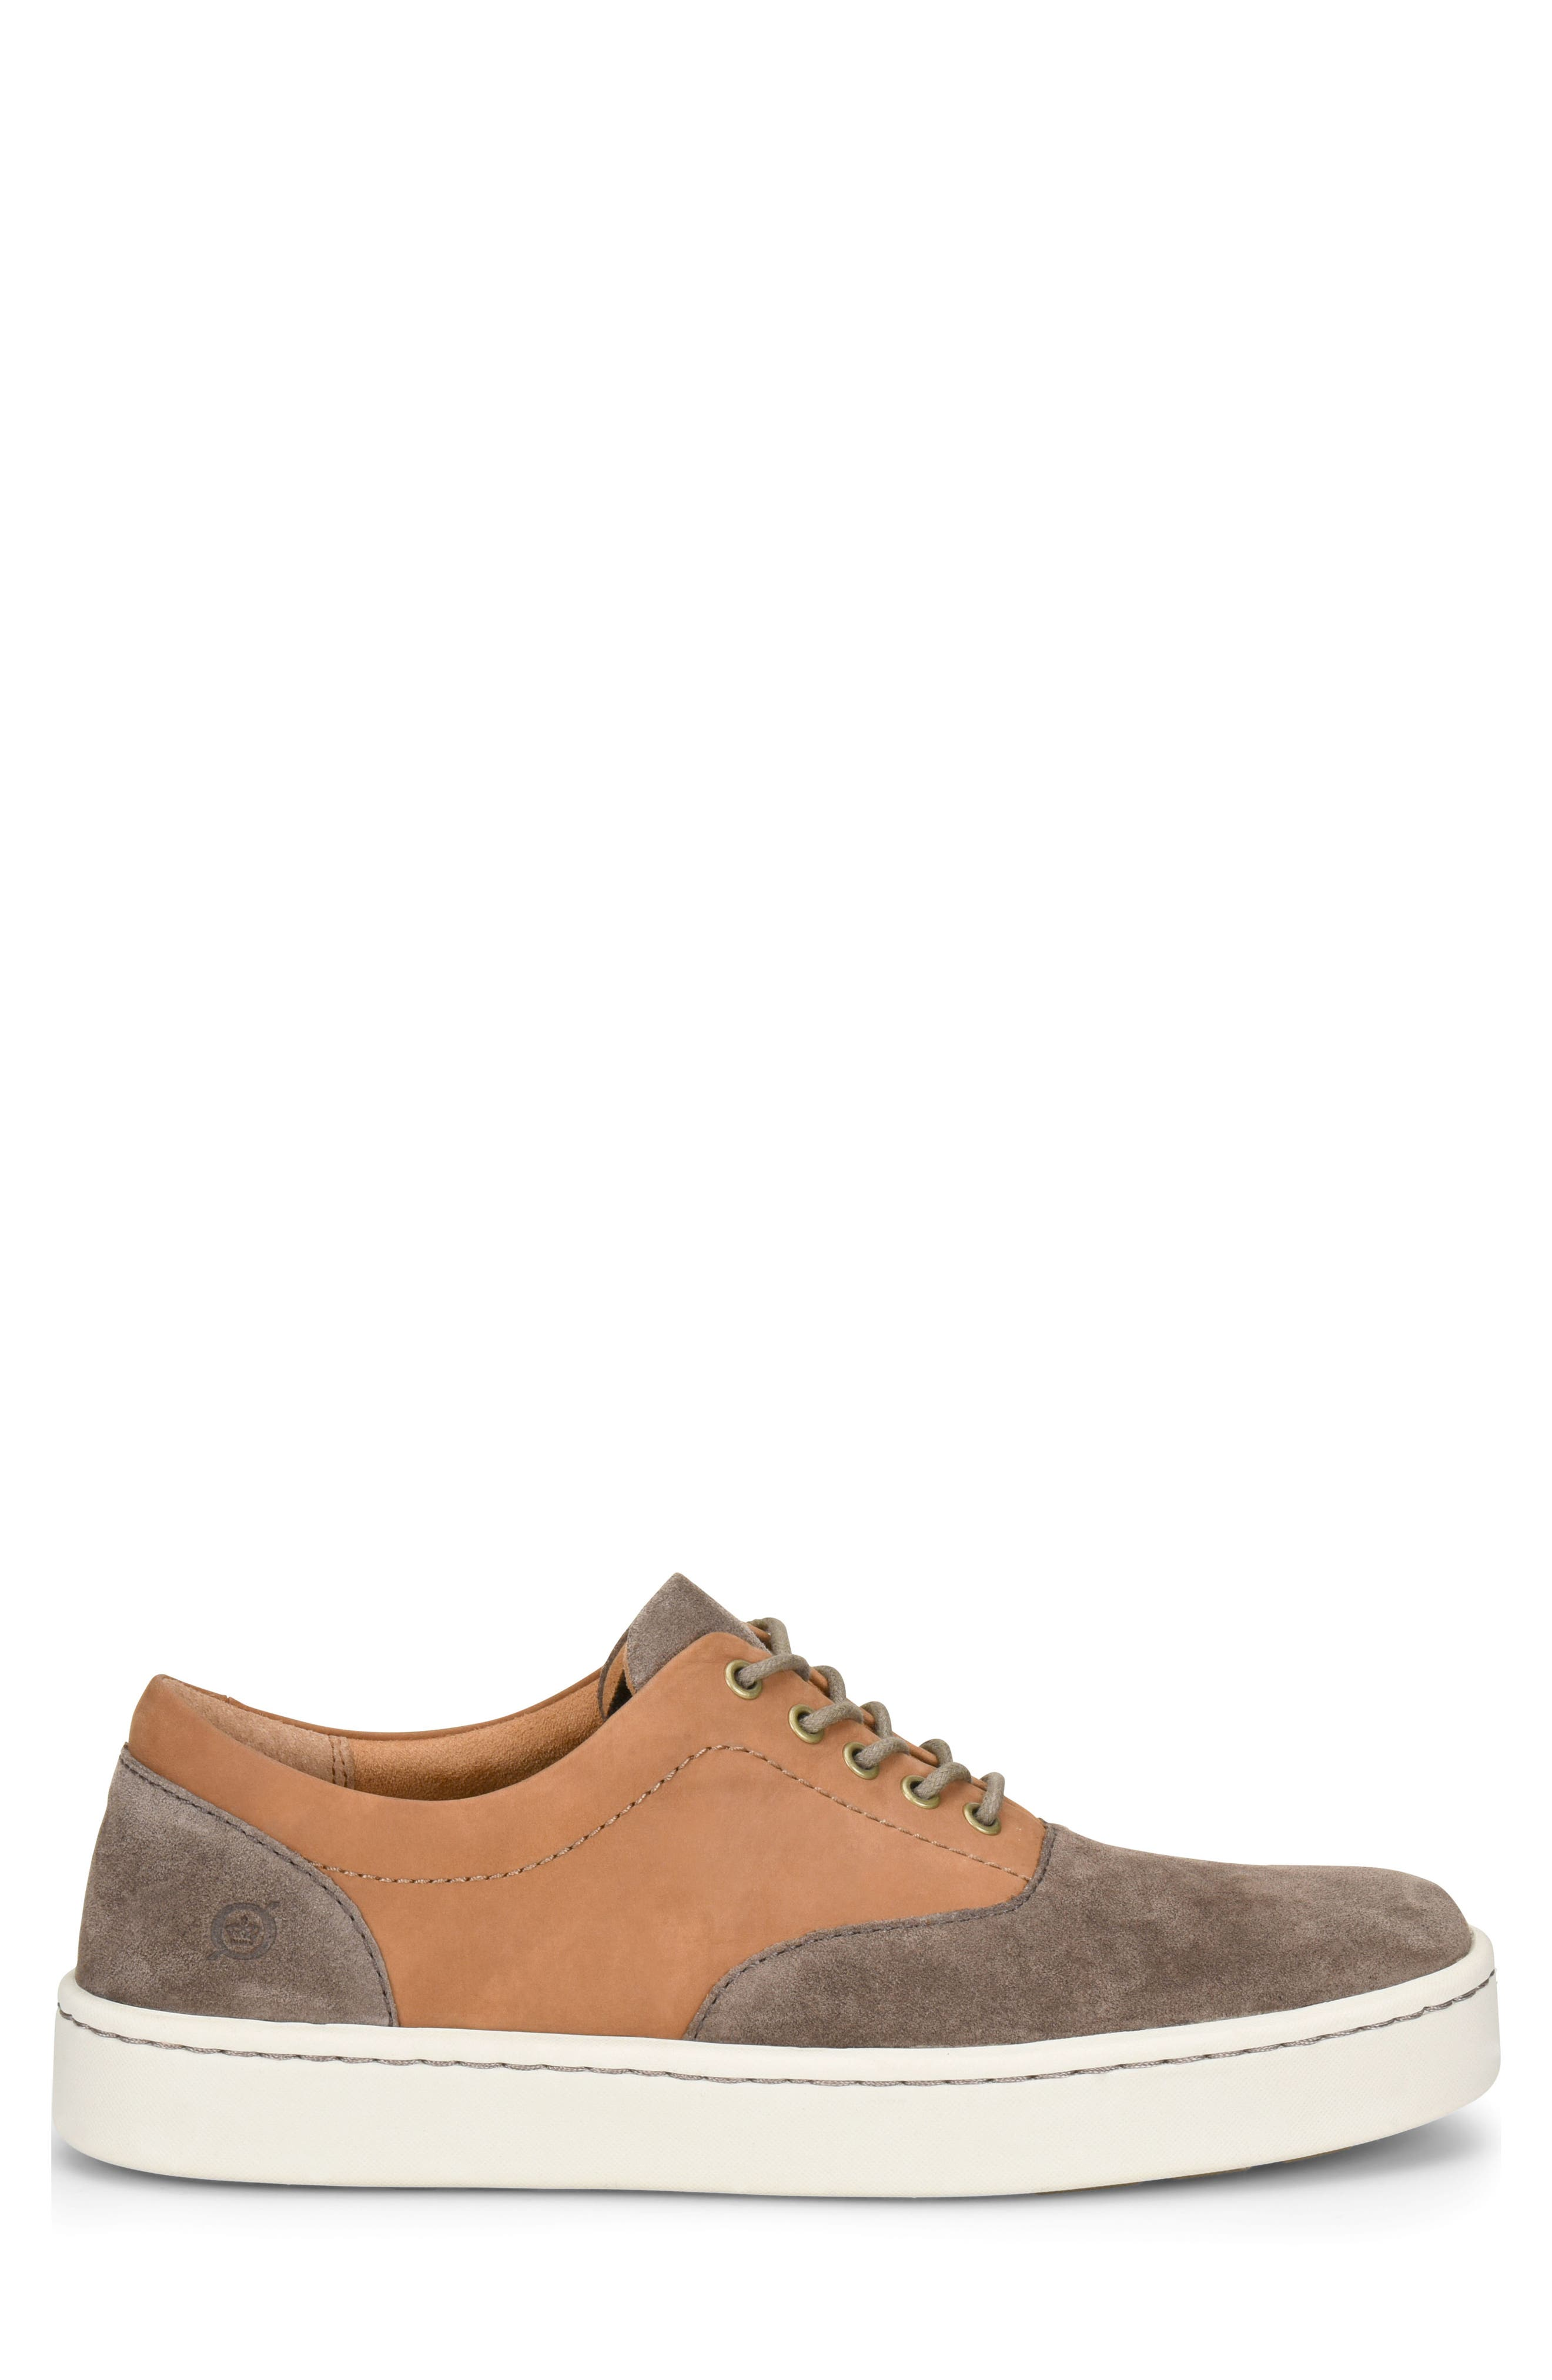 Keystone Low Top Sneaker,                             Alternate thumbnail 3, color,                             Taupe Leather